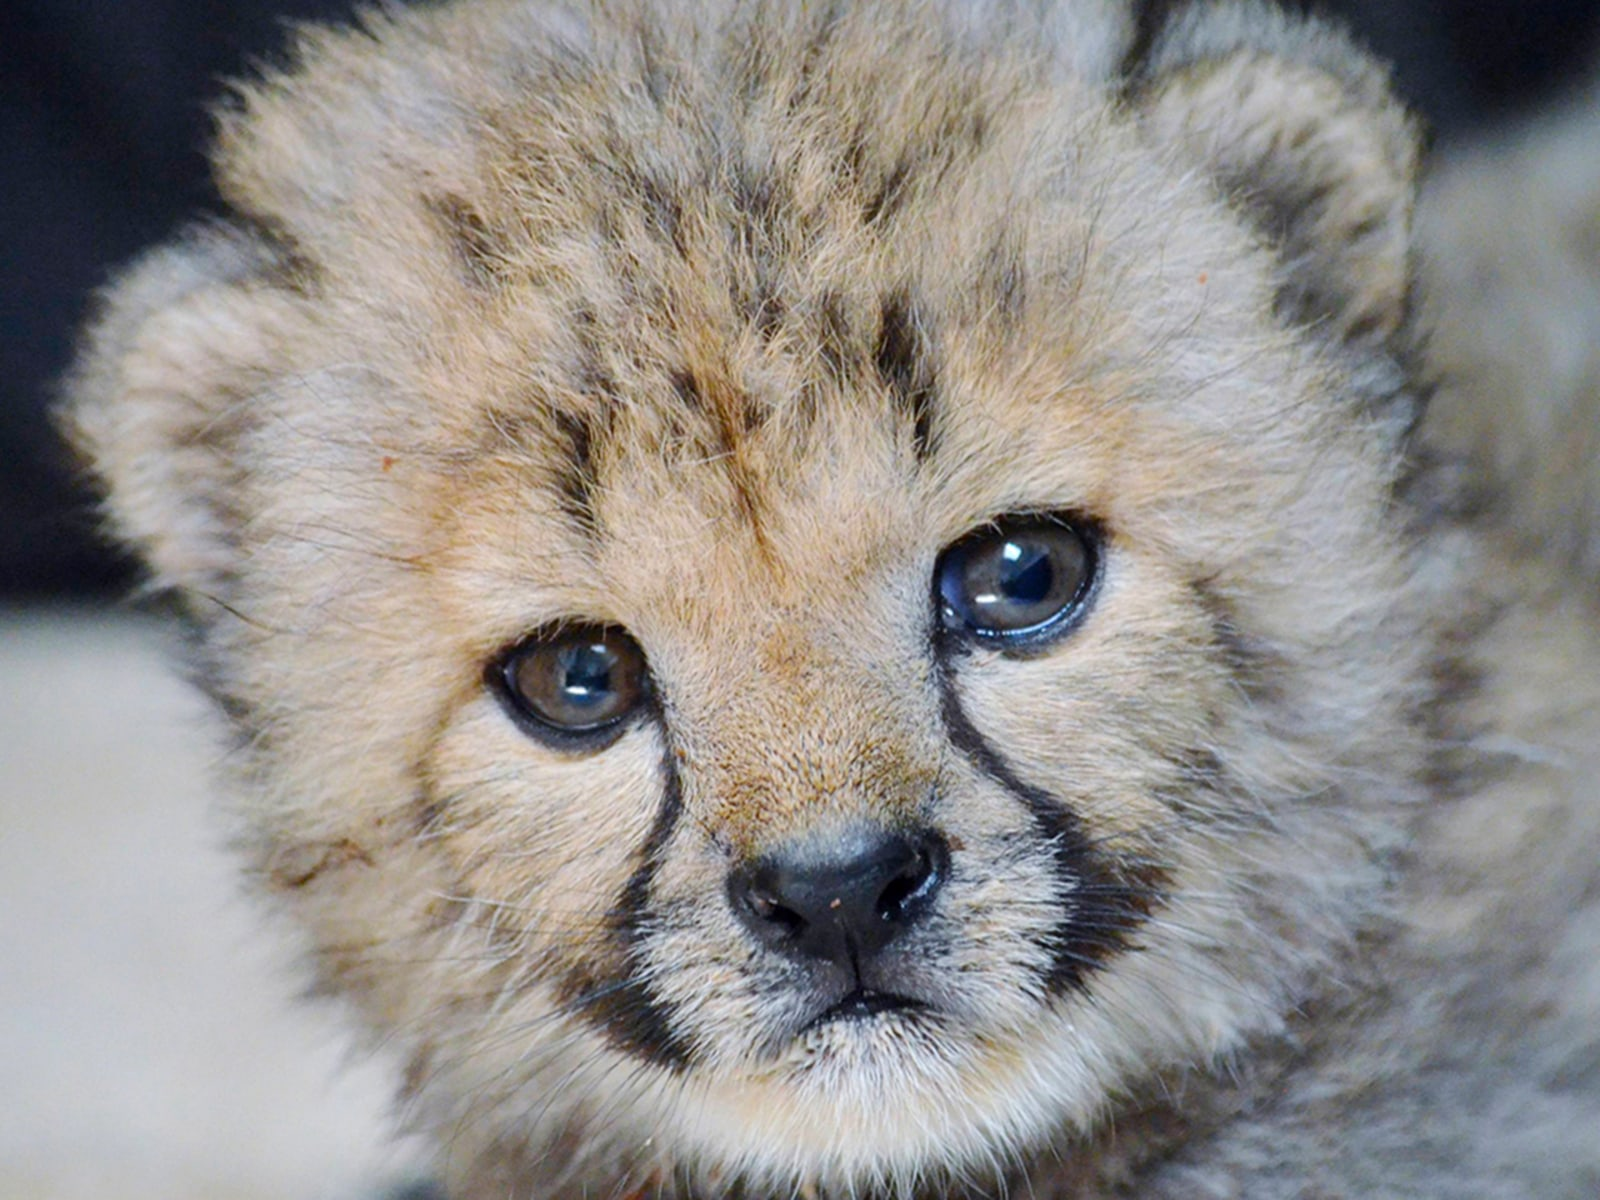 Image: A cheetah cub named Winspear is pictured in this undated handout photo courtesy of the Dallas Zoo